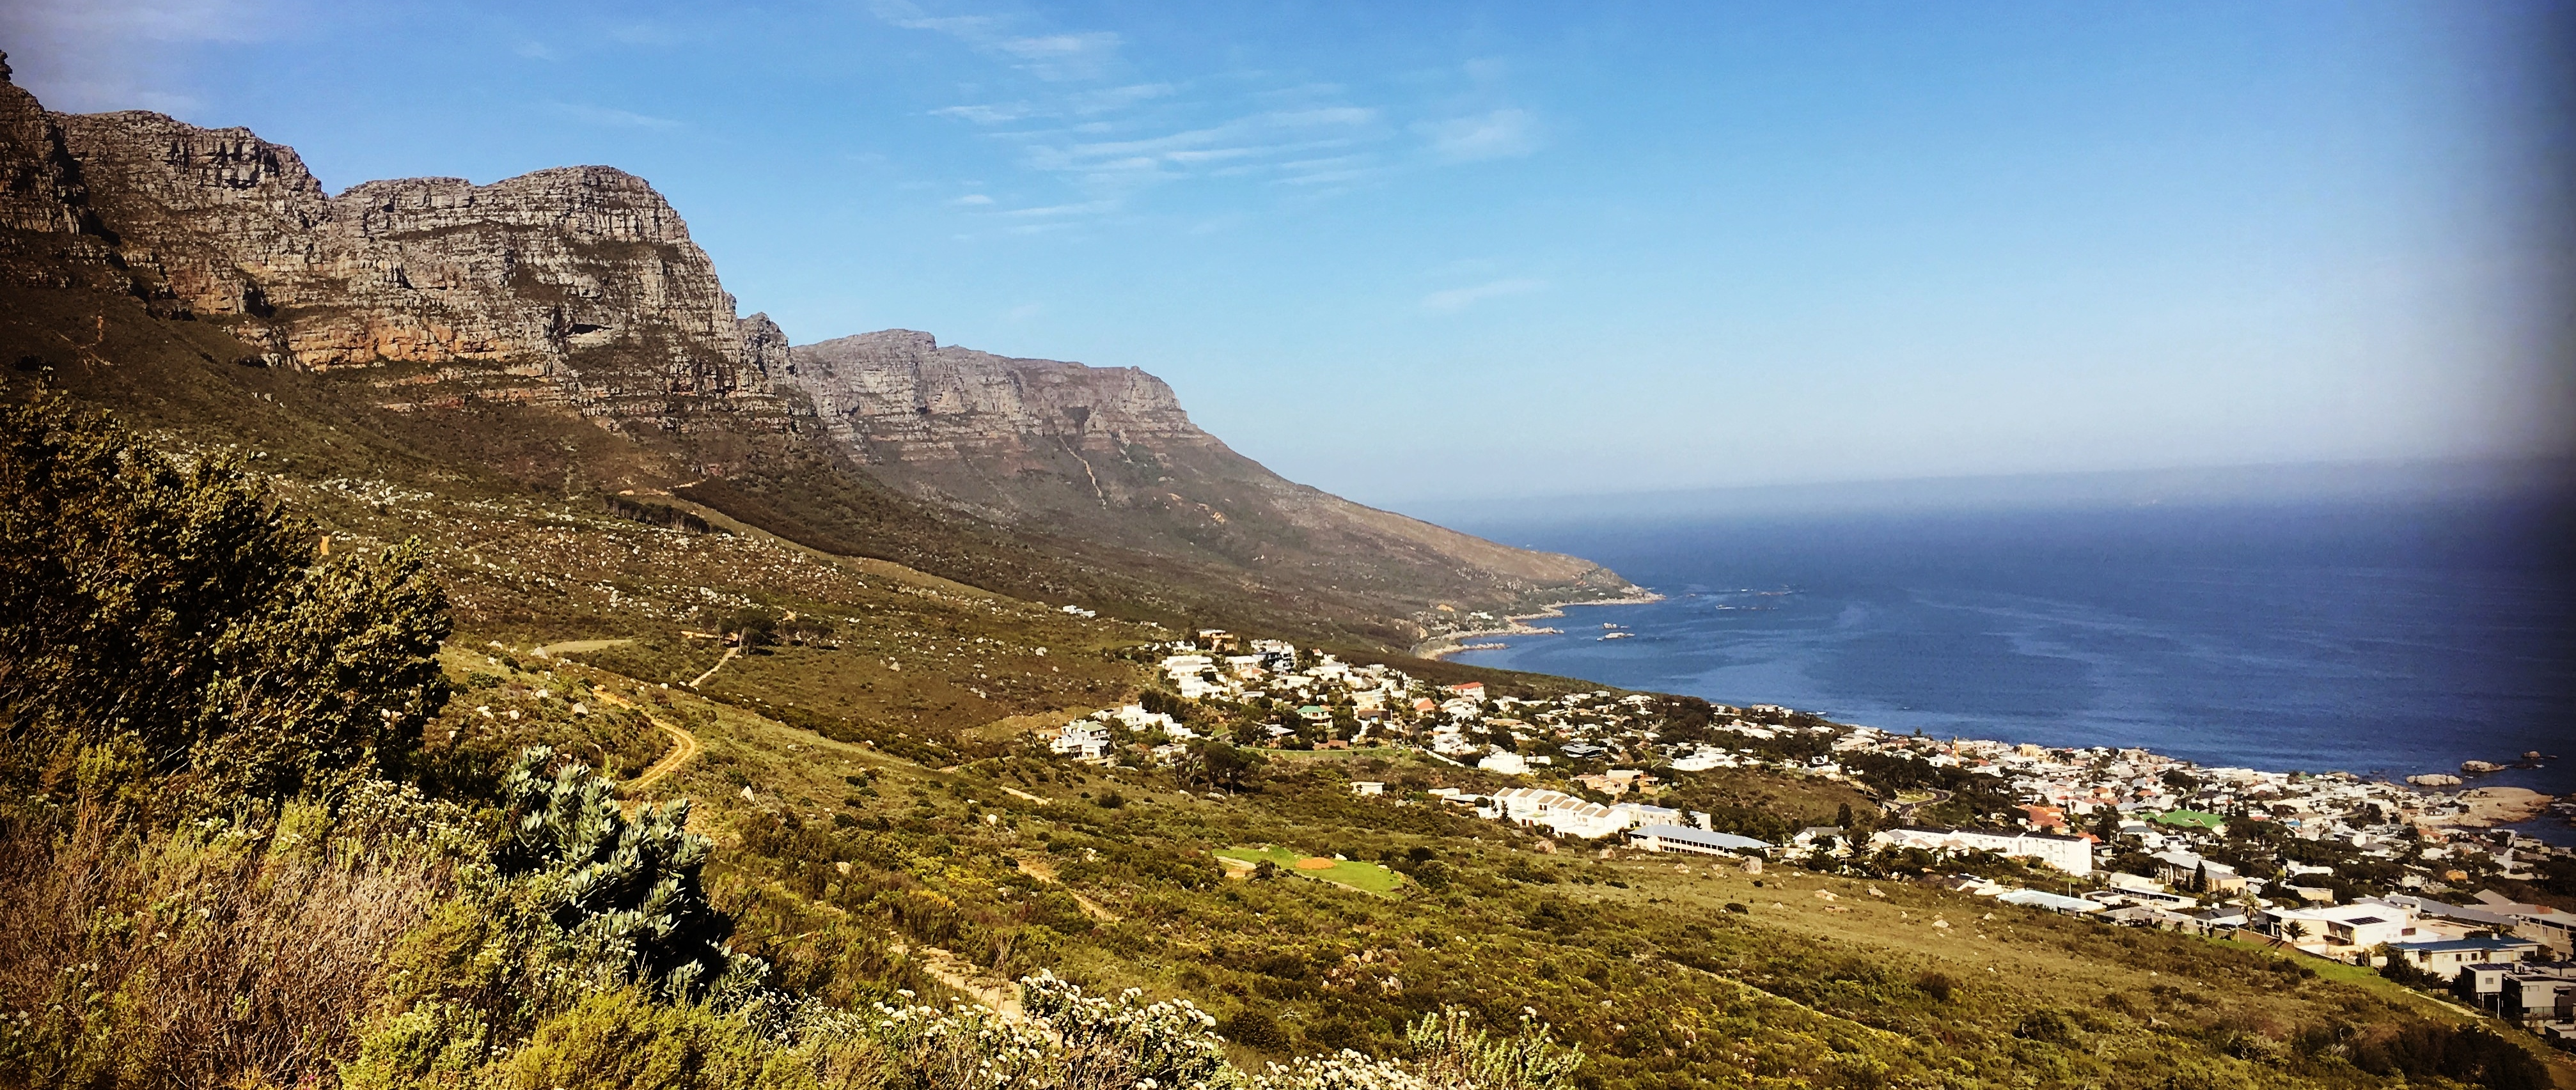 Cape Town in the summer… a place to visit!